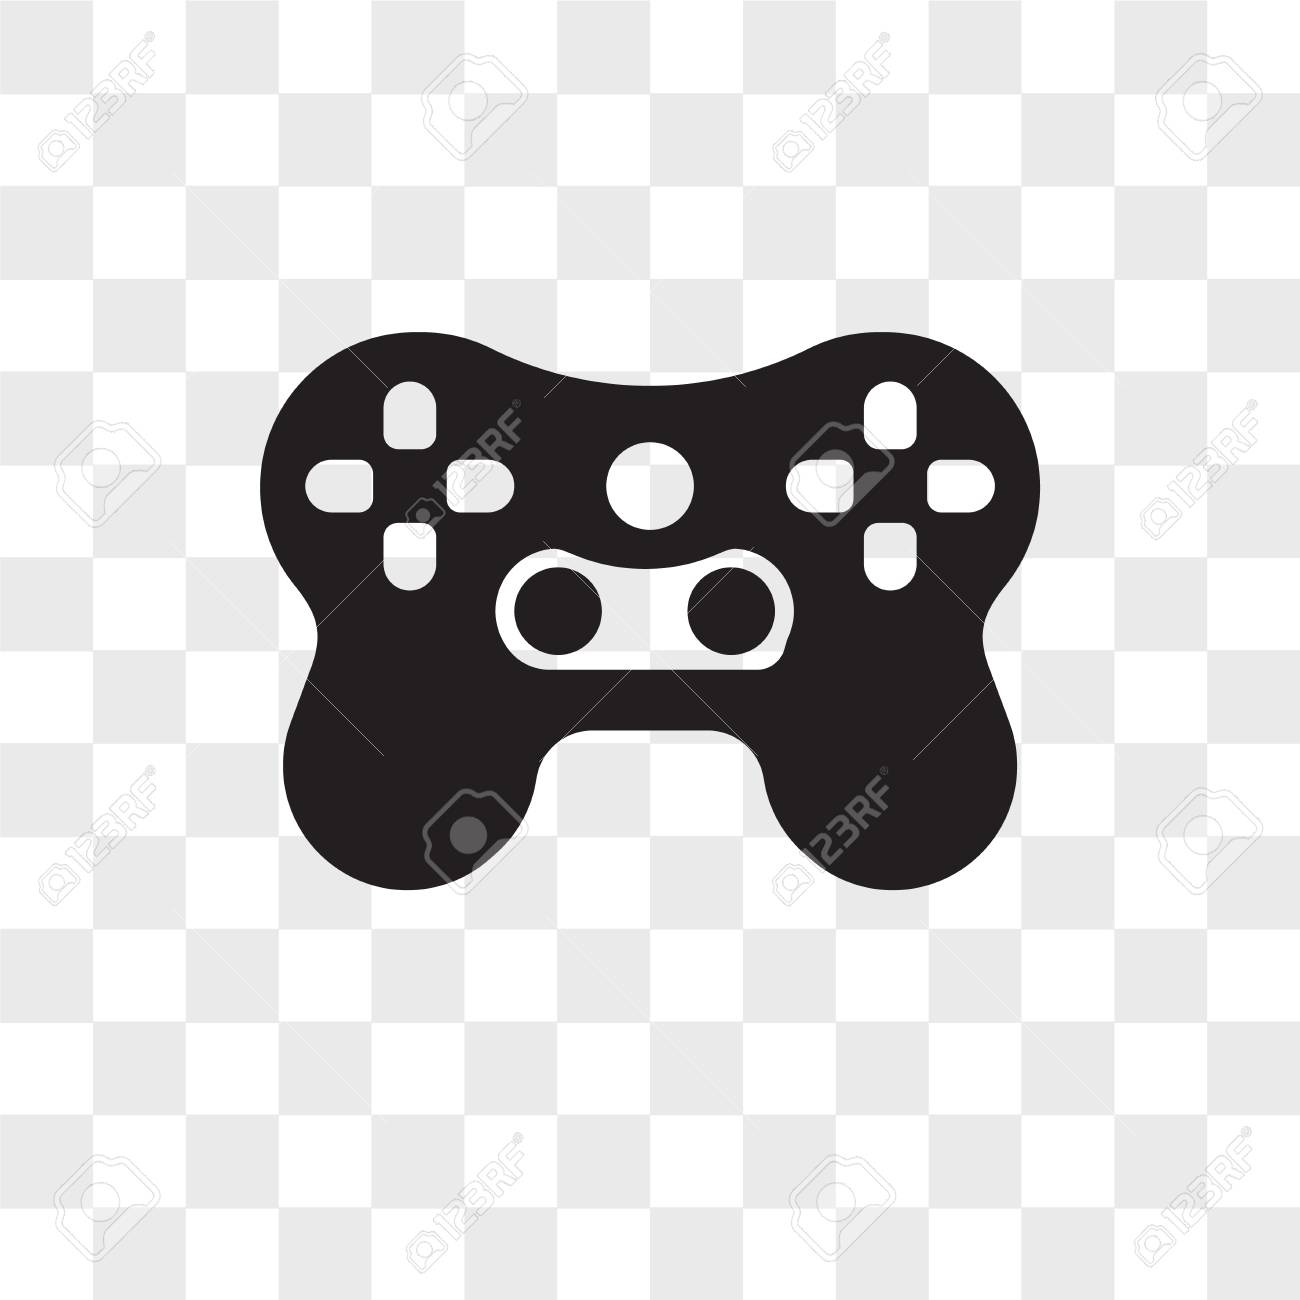 Video Games Vector Icon Isolated On Transparent Background Video Royalty Free Cliparts Vectors And Stock Illustration Image 109016282